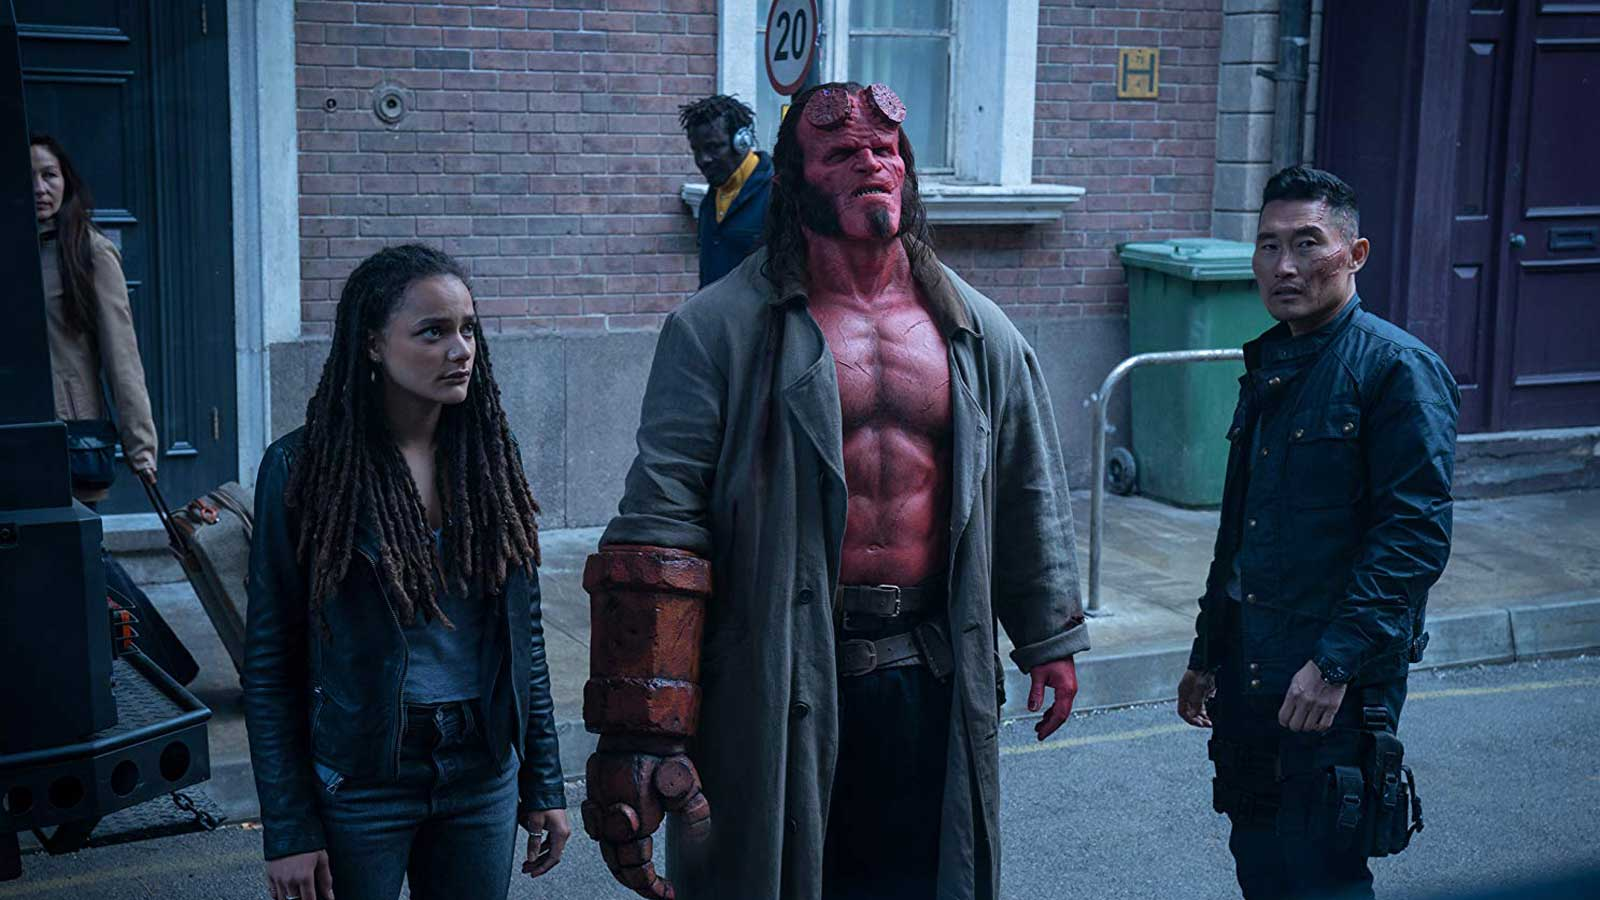 Hellboy Review - OC Movie Reviews - Movie Reviews, Movie News, Documentary Reviews, Short Films, Short Film Reviews, Trailers, Movie Trailers, Interviews, film reviews, film news, hollywood, indie films, documentaries, TV shows